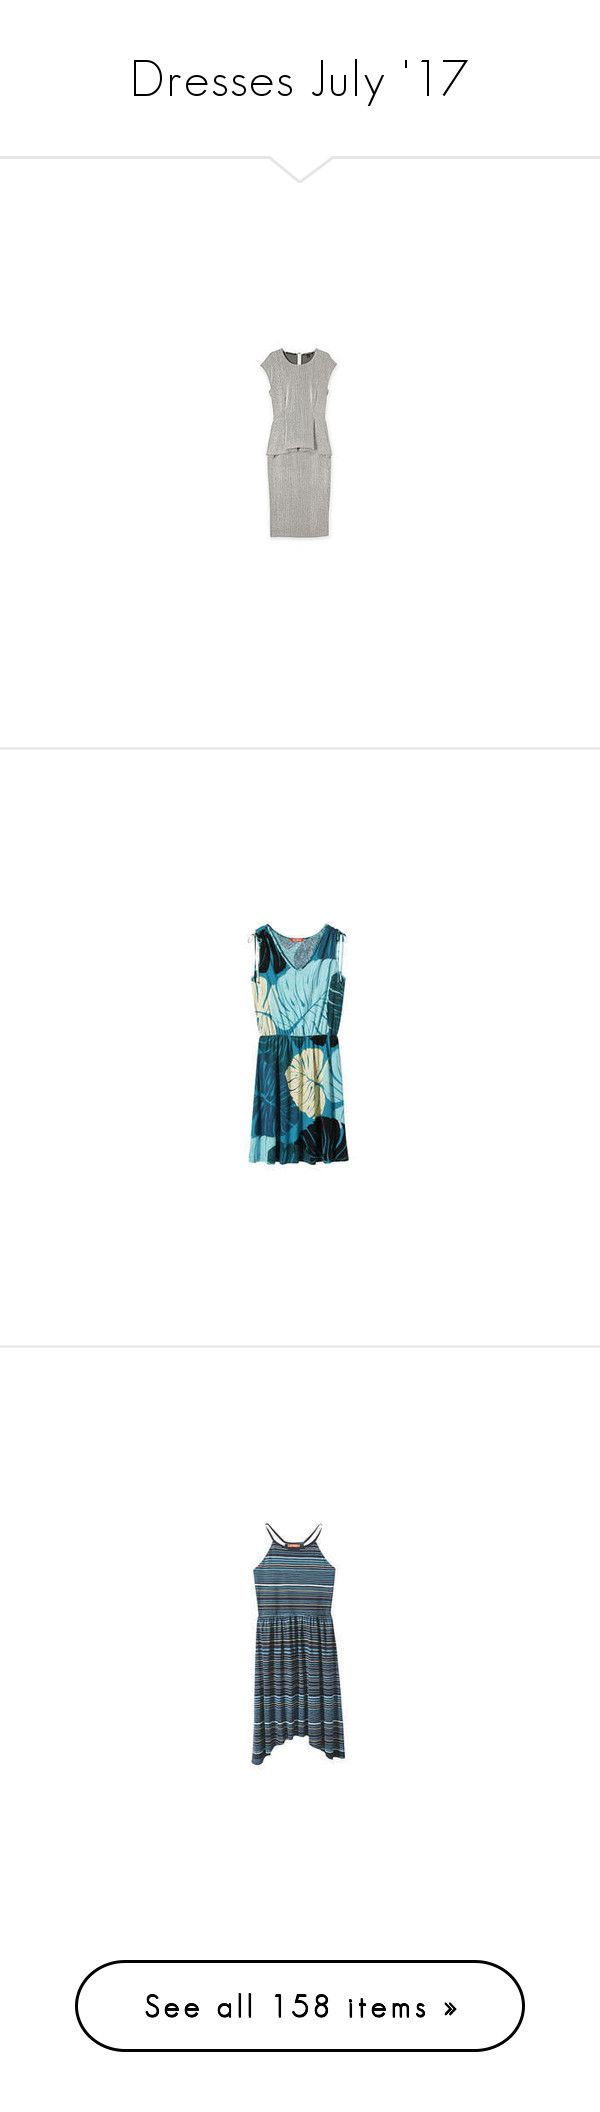 """""""Dresses July '17"""" by peeweevaaz ❤ liked on Polyvore featuring dresses, neutral, a line dress, cap sleeve a line dress, white day dress, v neck cap sleeve dress, v neck a line dress, wedding dresses, outerwear and white blazer jacket"""